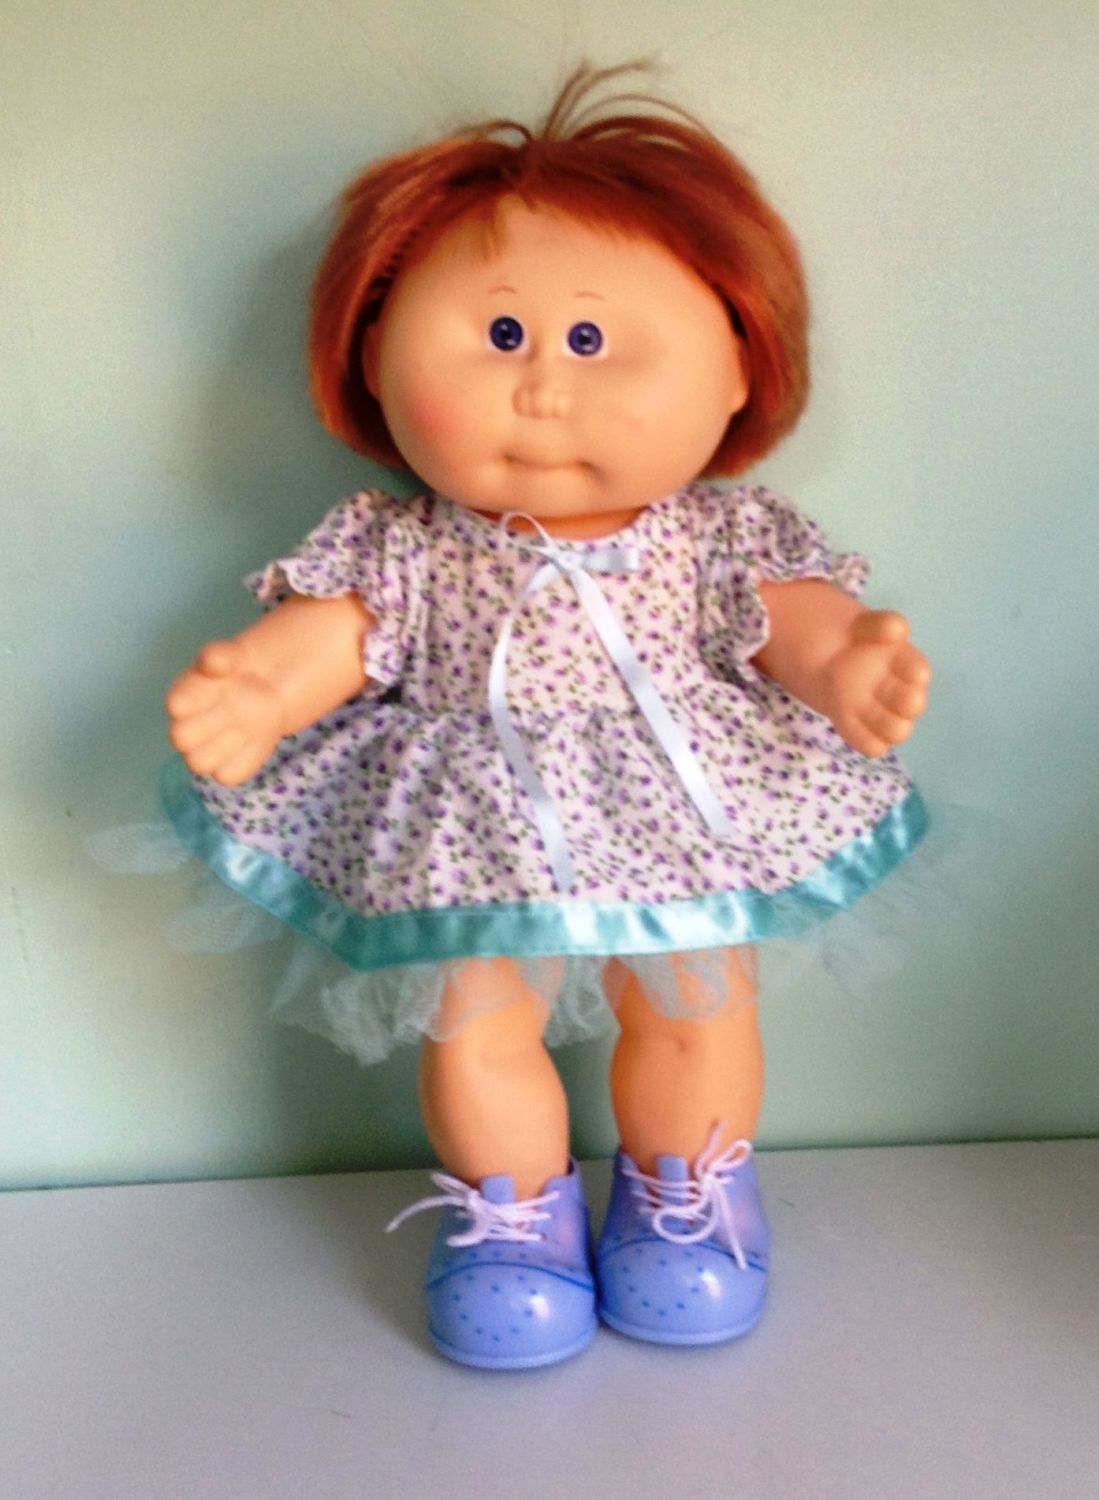 Doll's dress and panties set made to fit a 14 inch high Cabbage patch doll